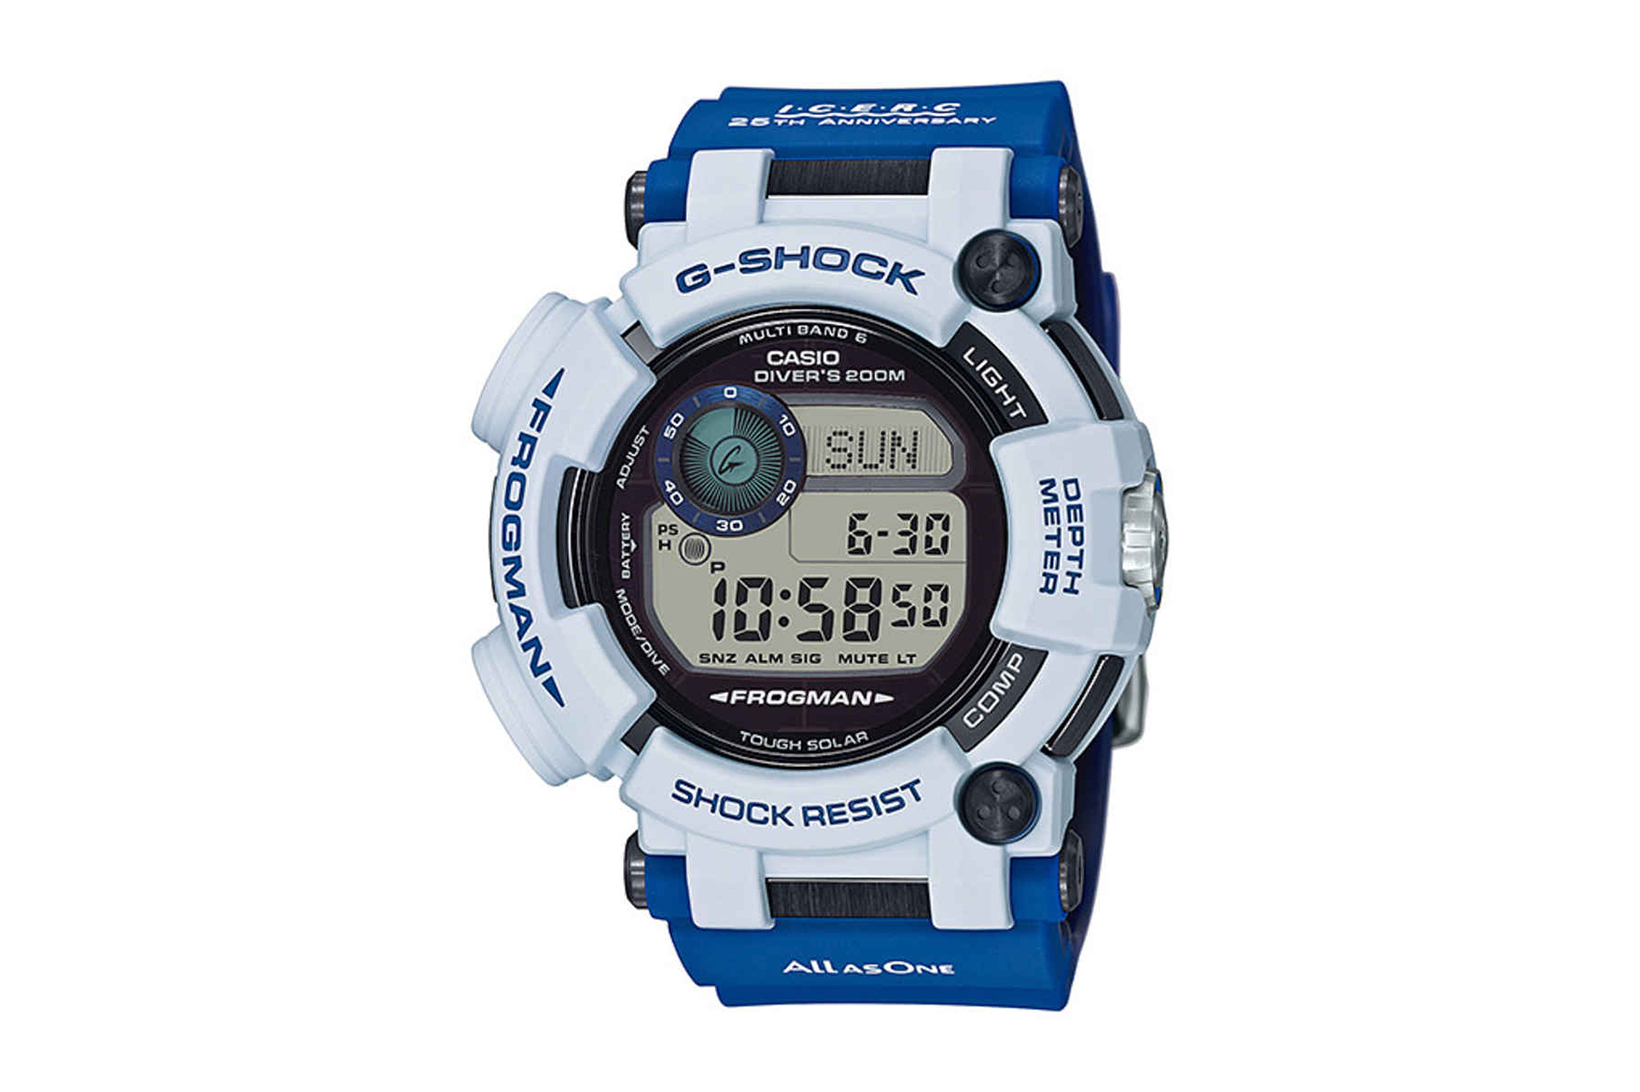 G-SHOCK Pays Homage to Land & Sea With the GWF-D1000K-7JR Frogman